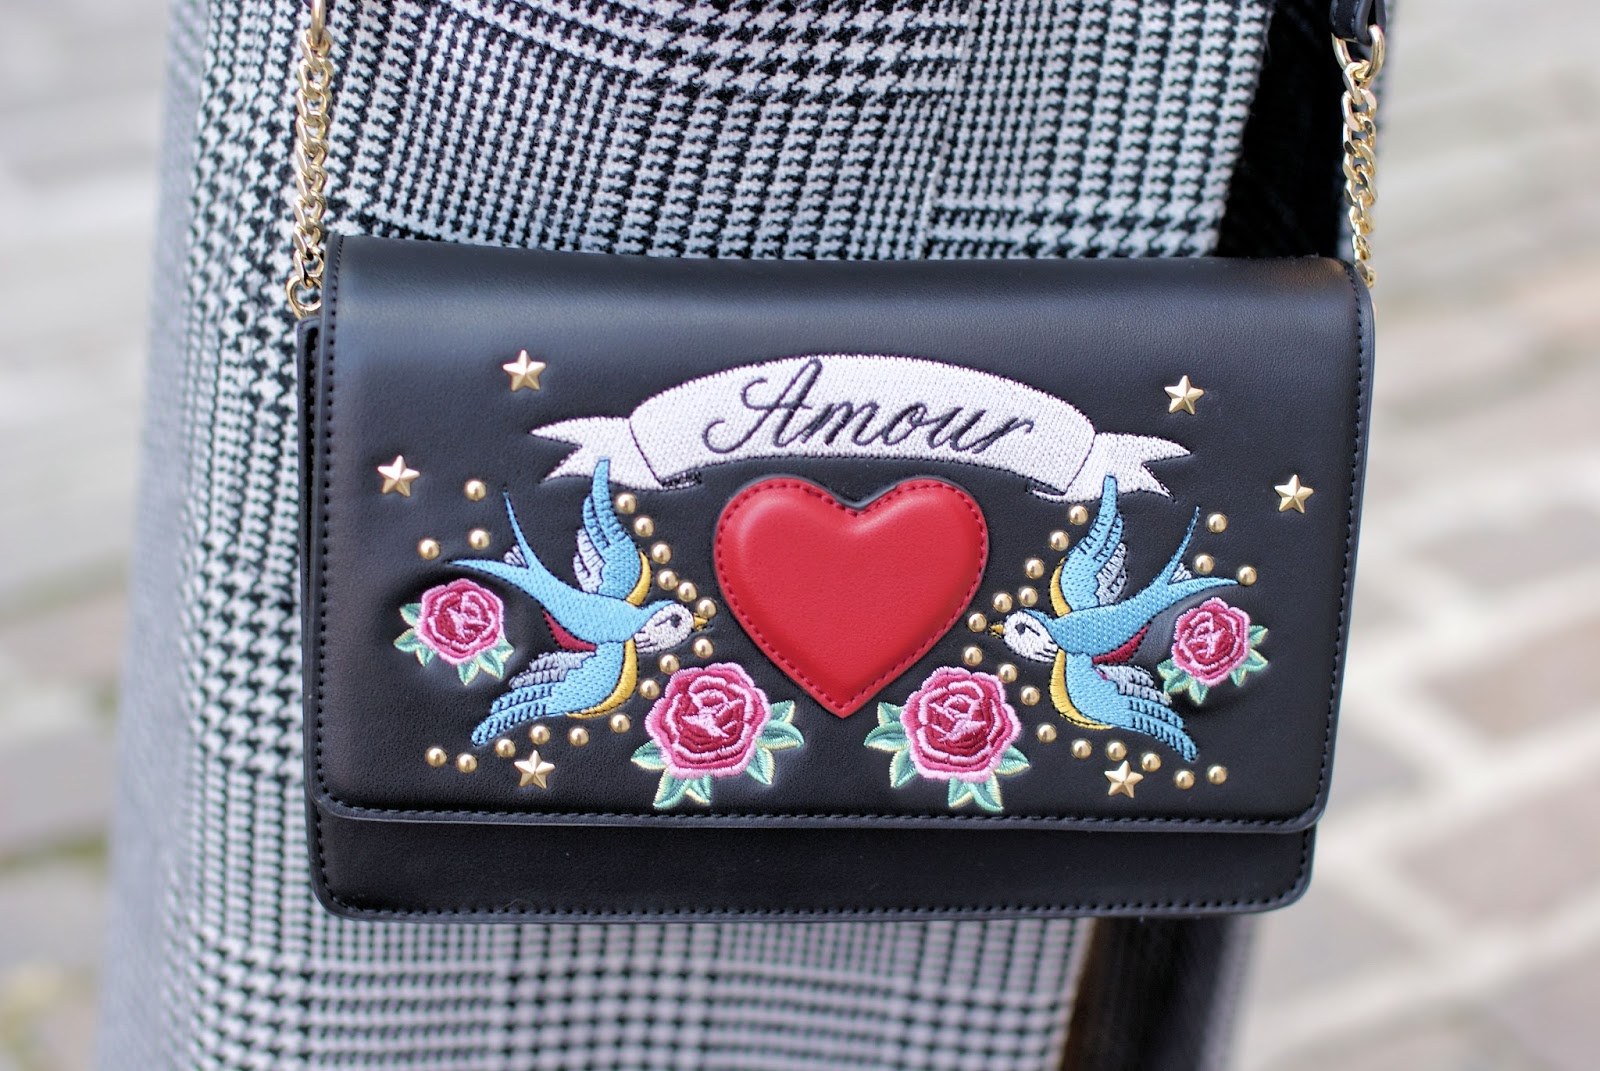 Gucci inspired bag, street style look on Fashion and Cookies fashion blog, fashion blogger style